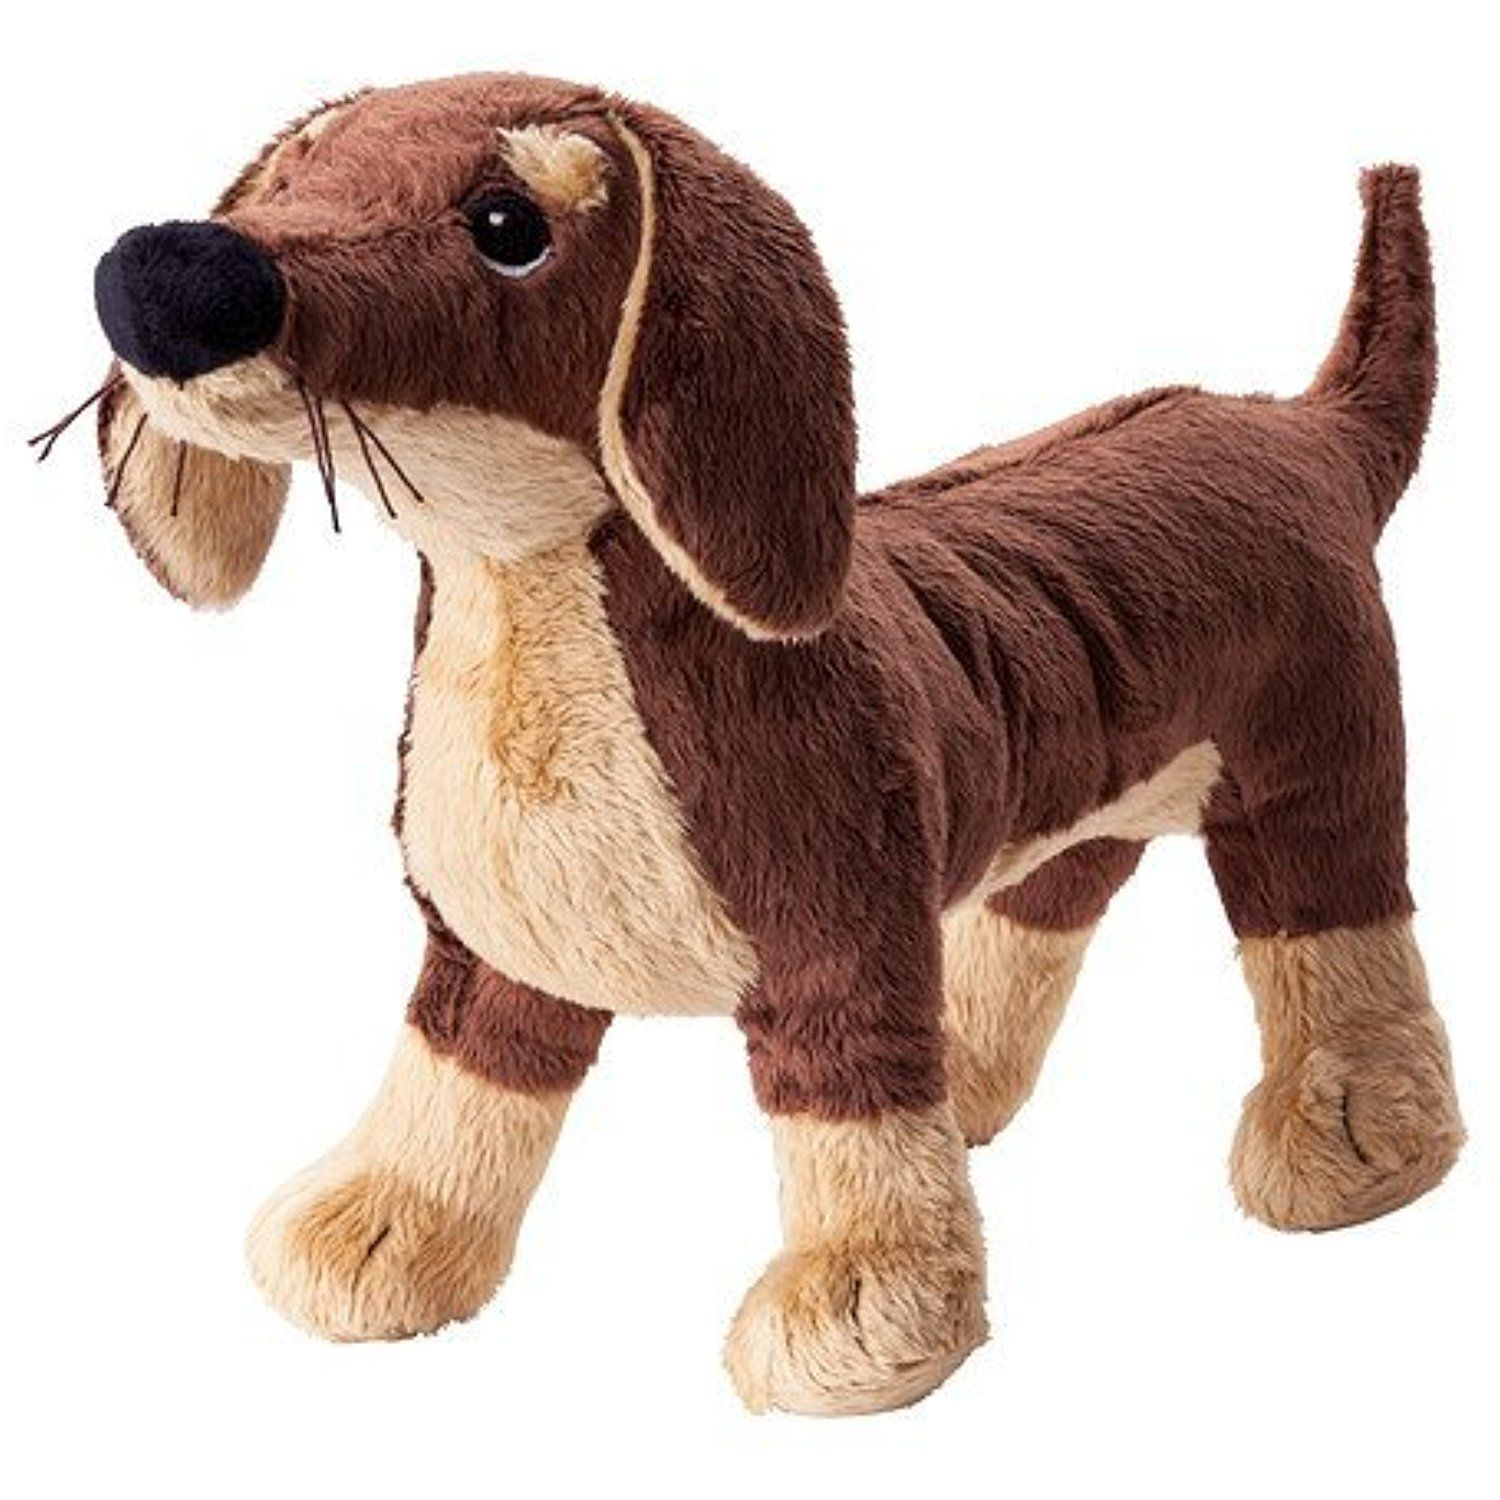 Ikea Stuffed Animal Dog Puppy Plush Soft Toy, Brown